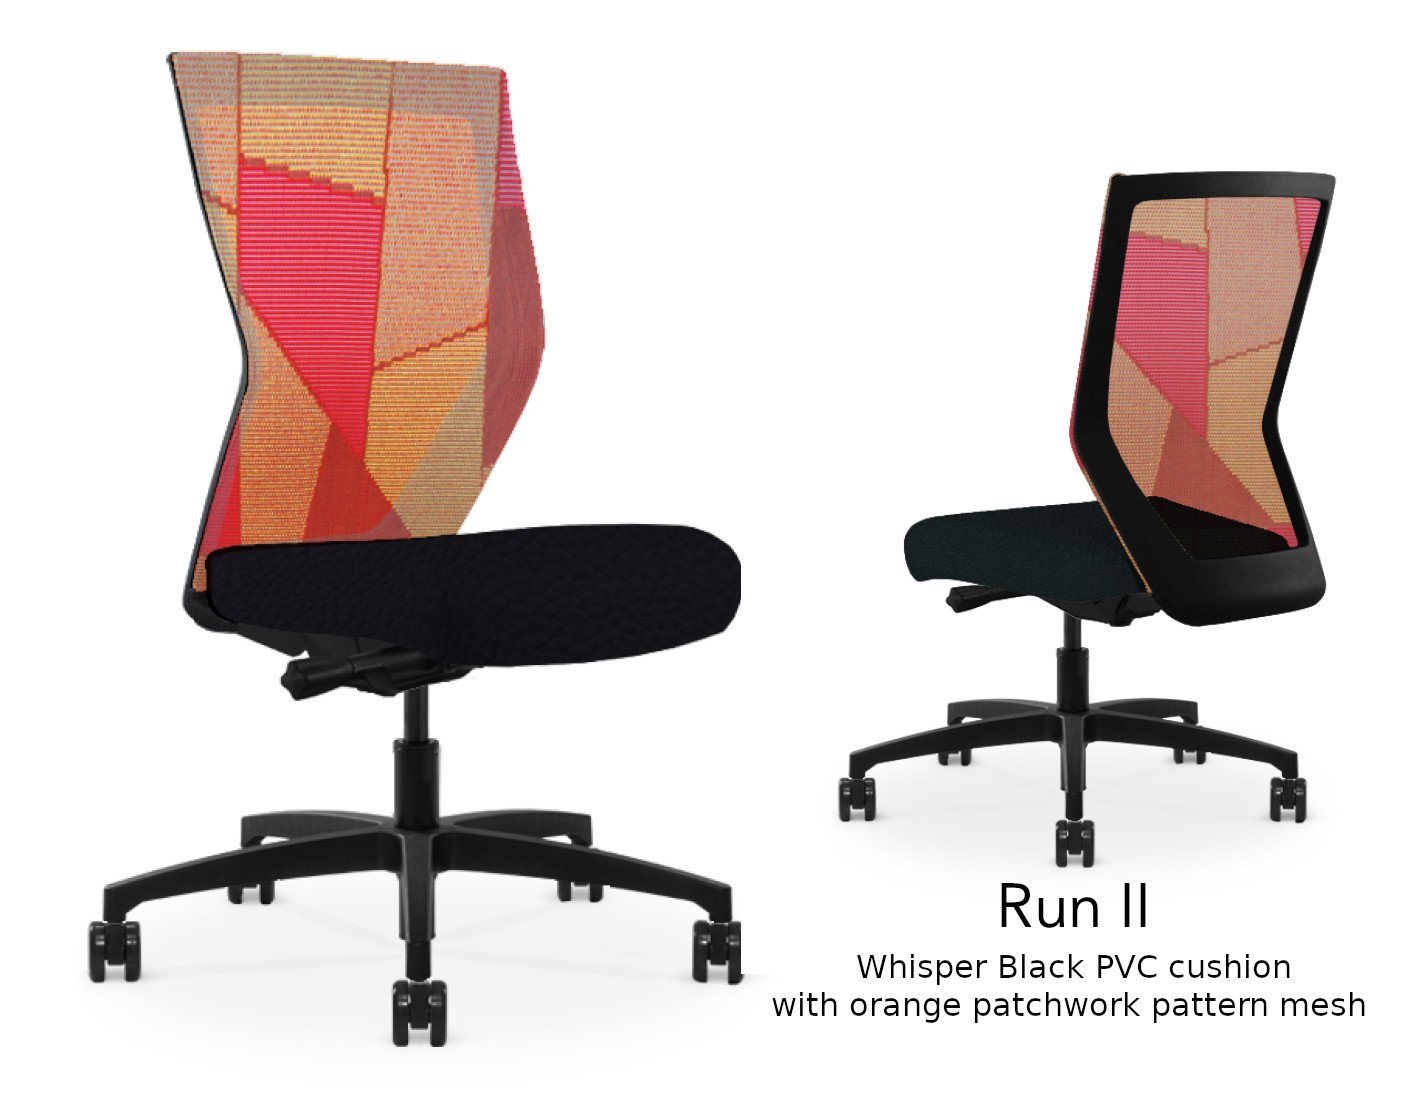 Composite image of a Run II high-back chair, front and back. It has a black PVC cushion, and an orange patchwork mesh back.